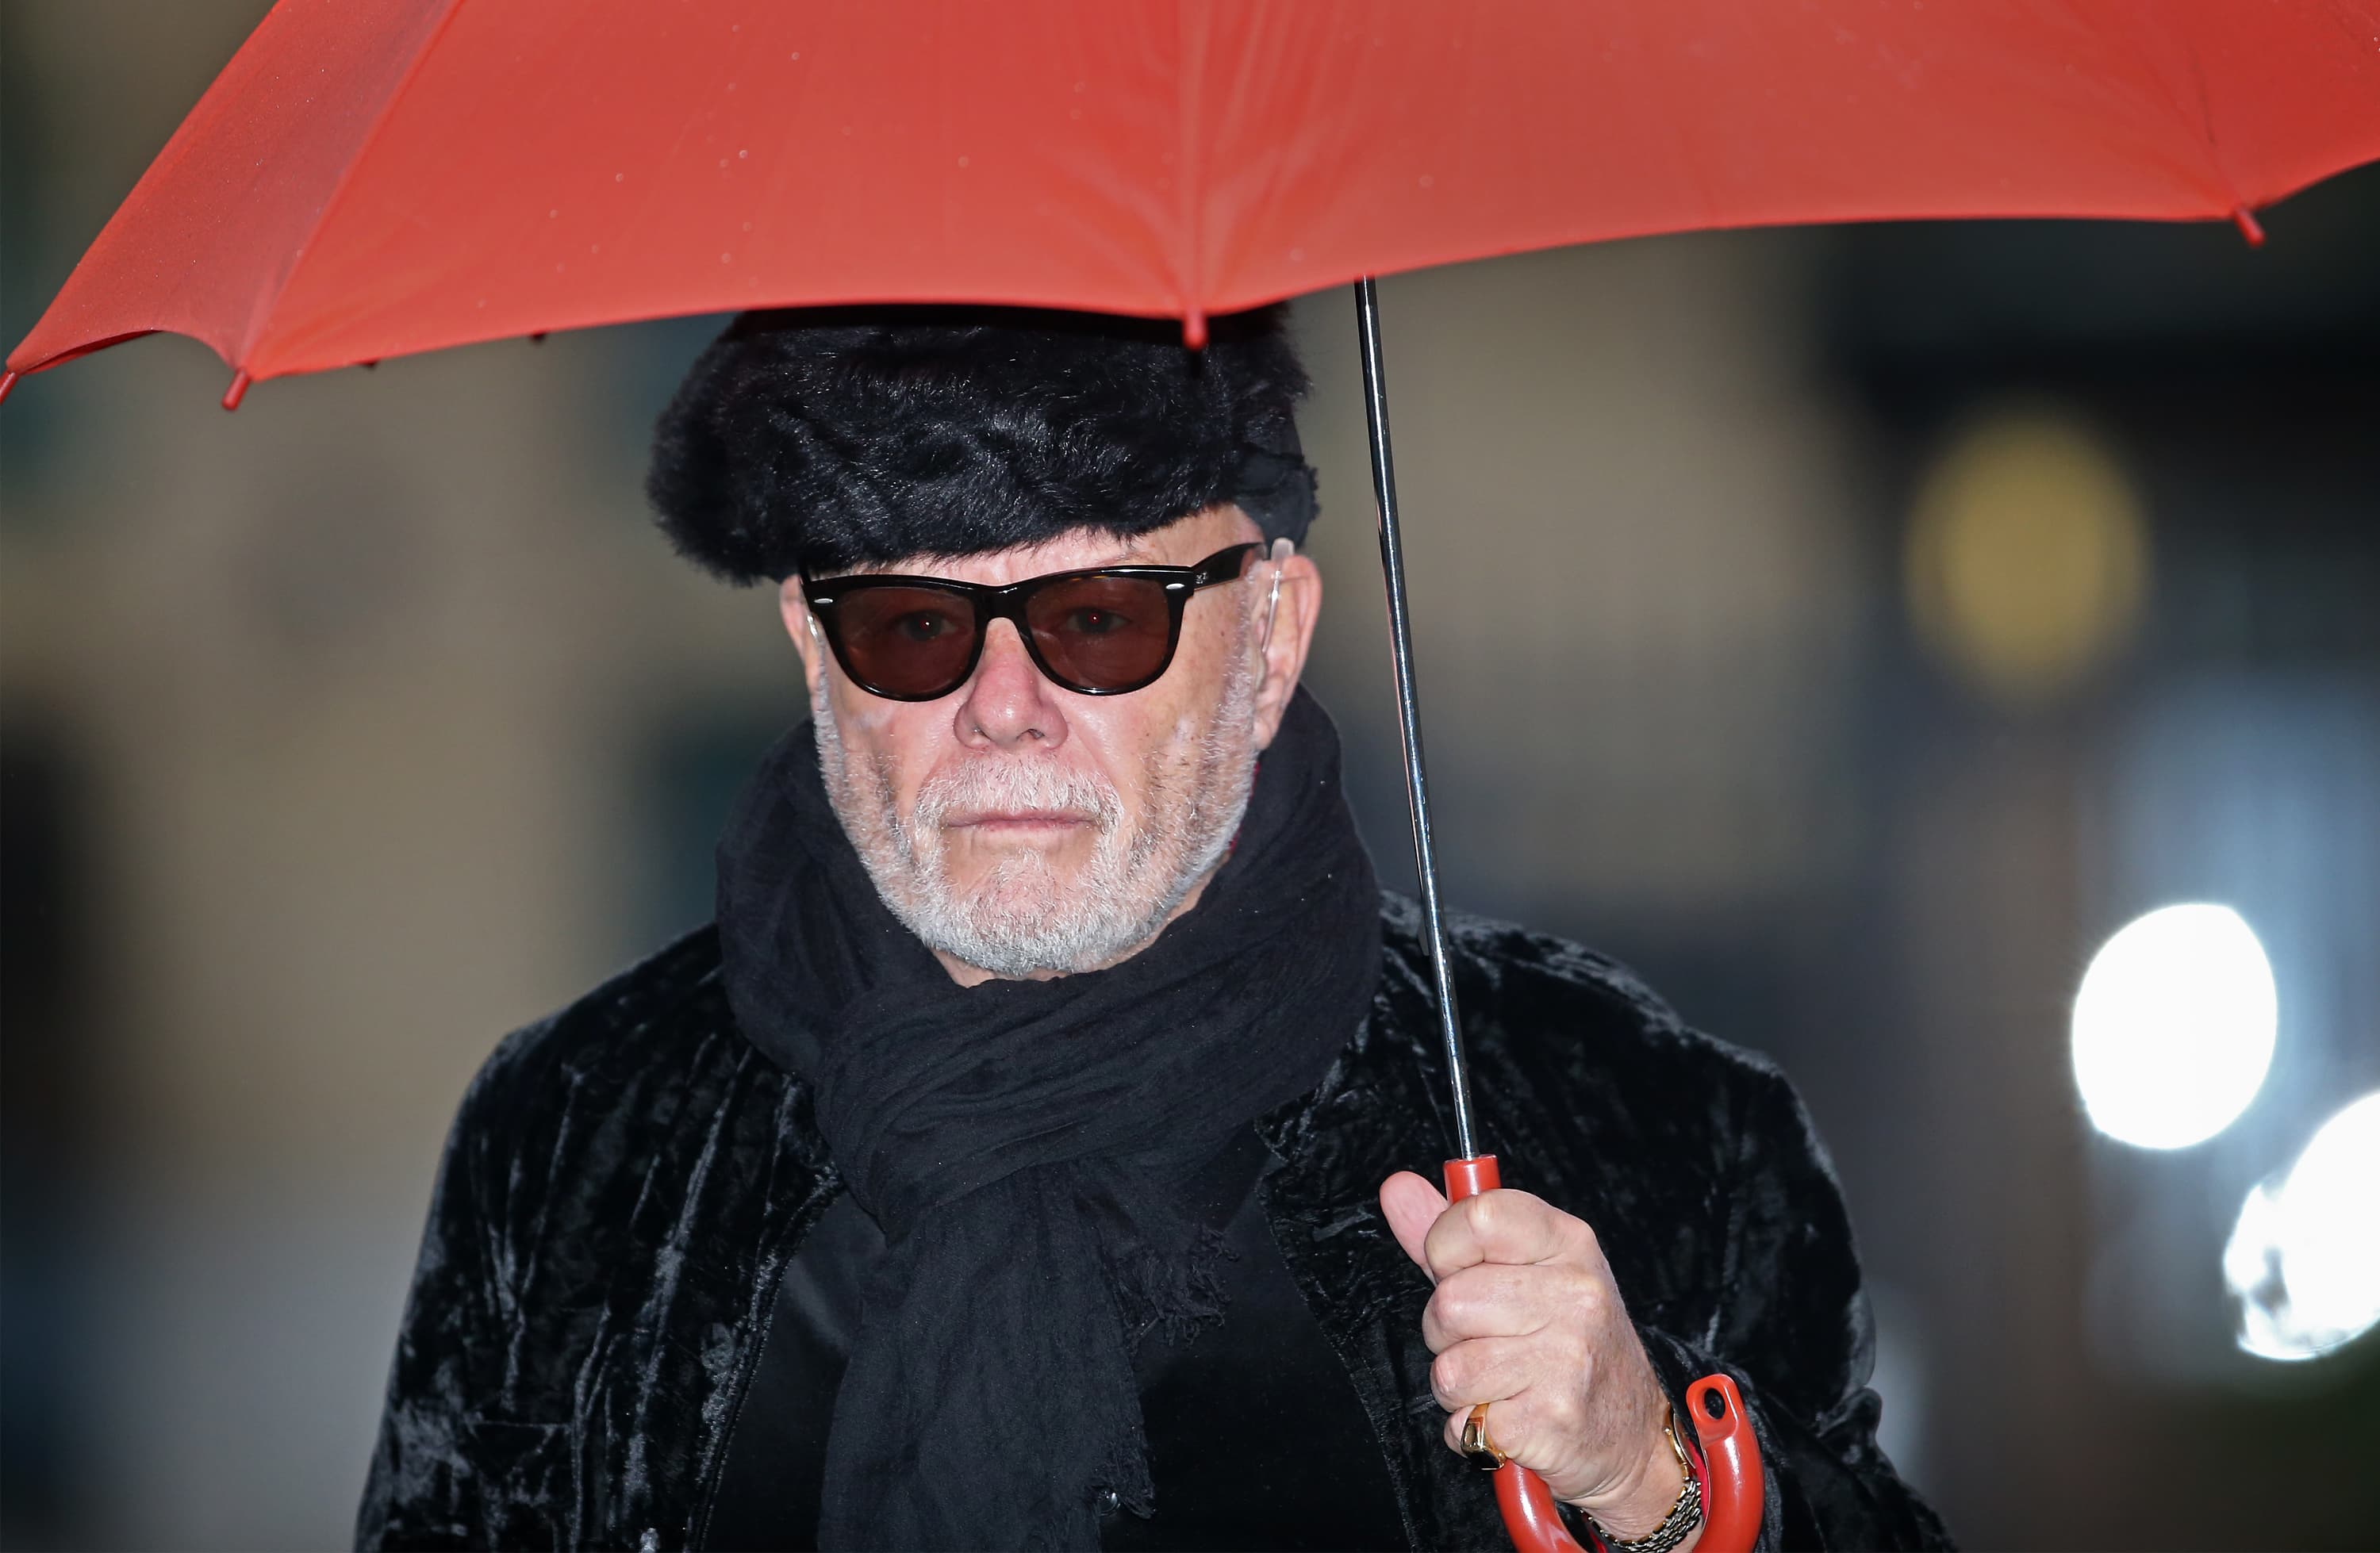 joker convicted pedophile gary glitter set to earn big royalties